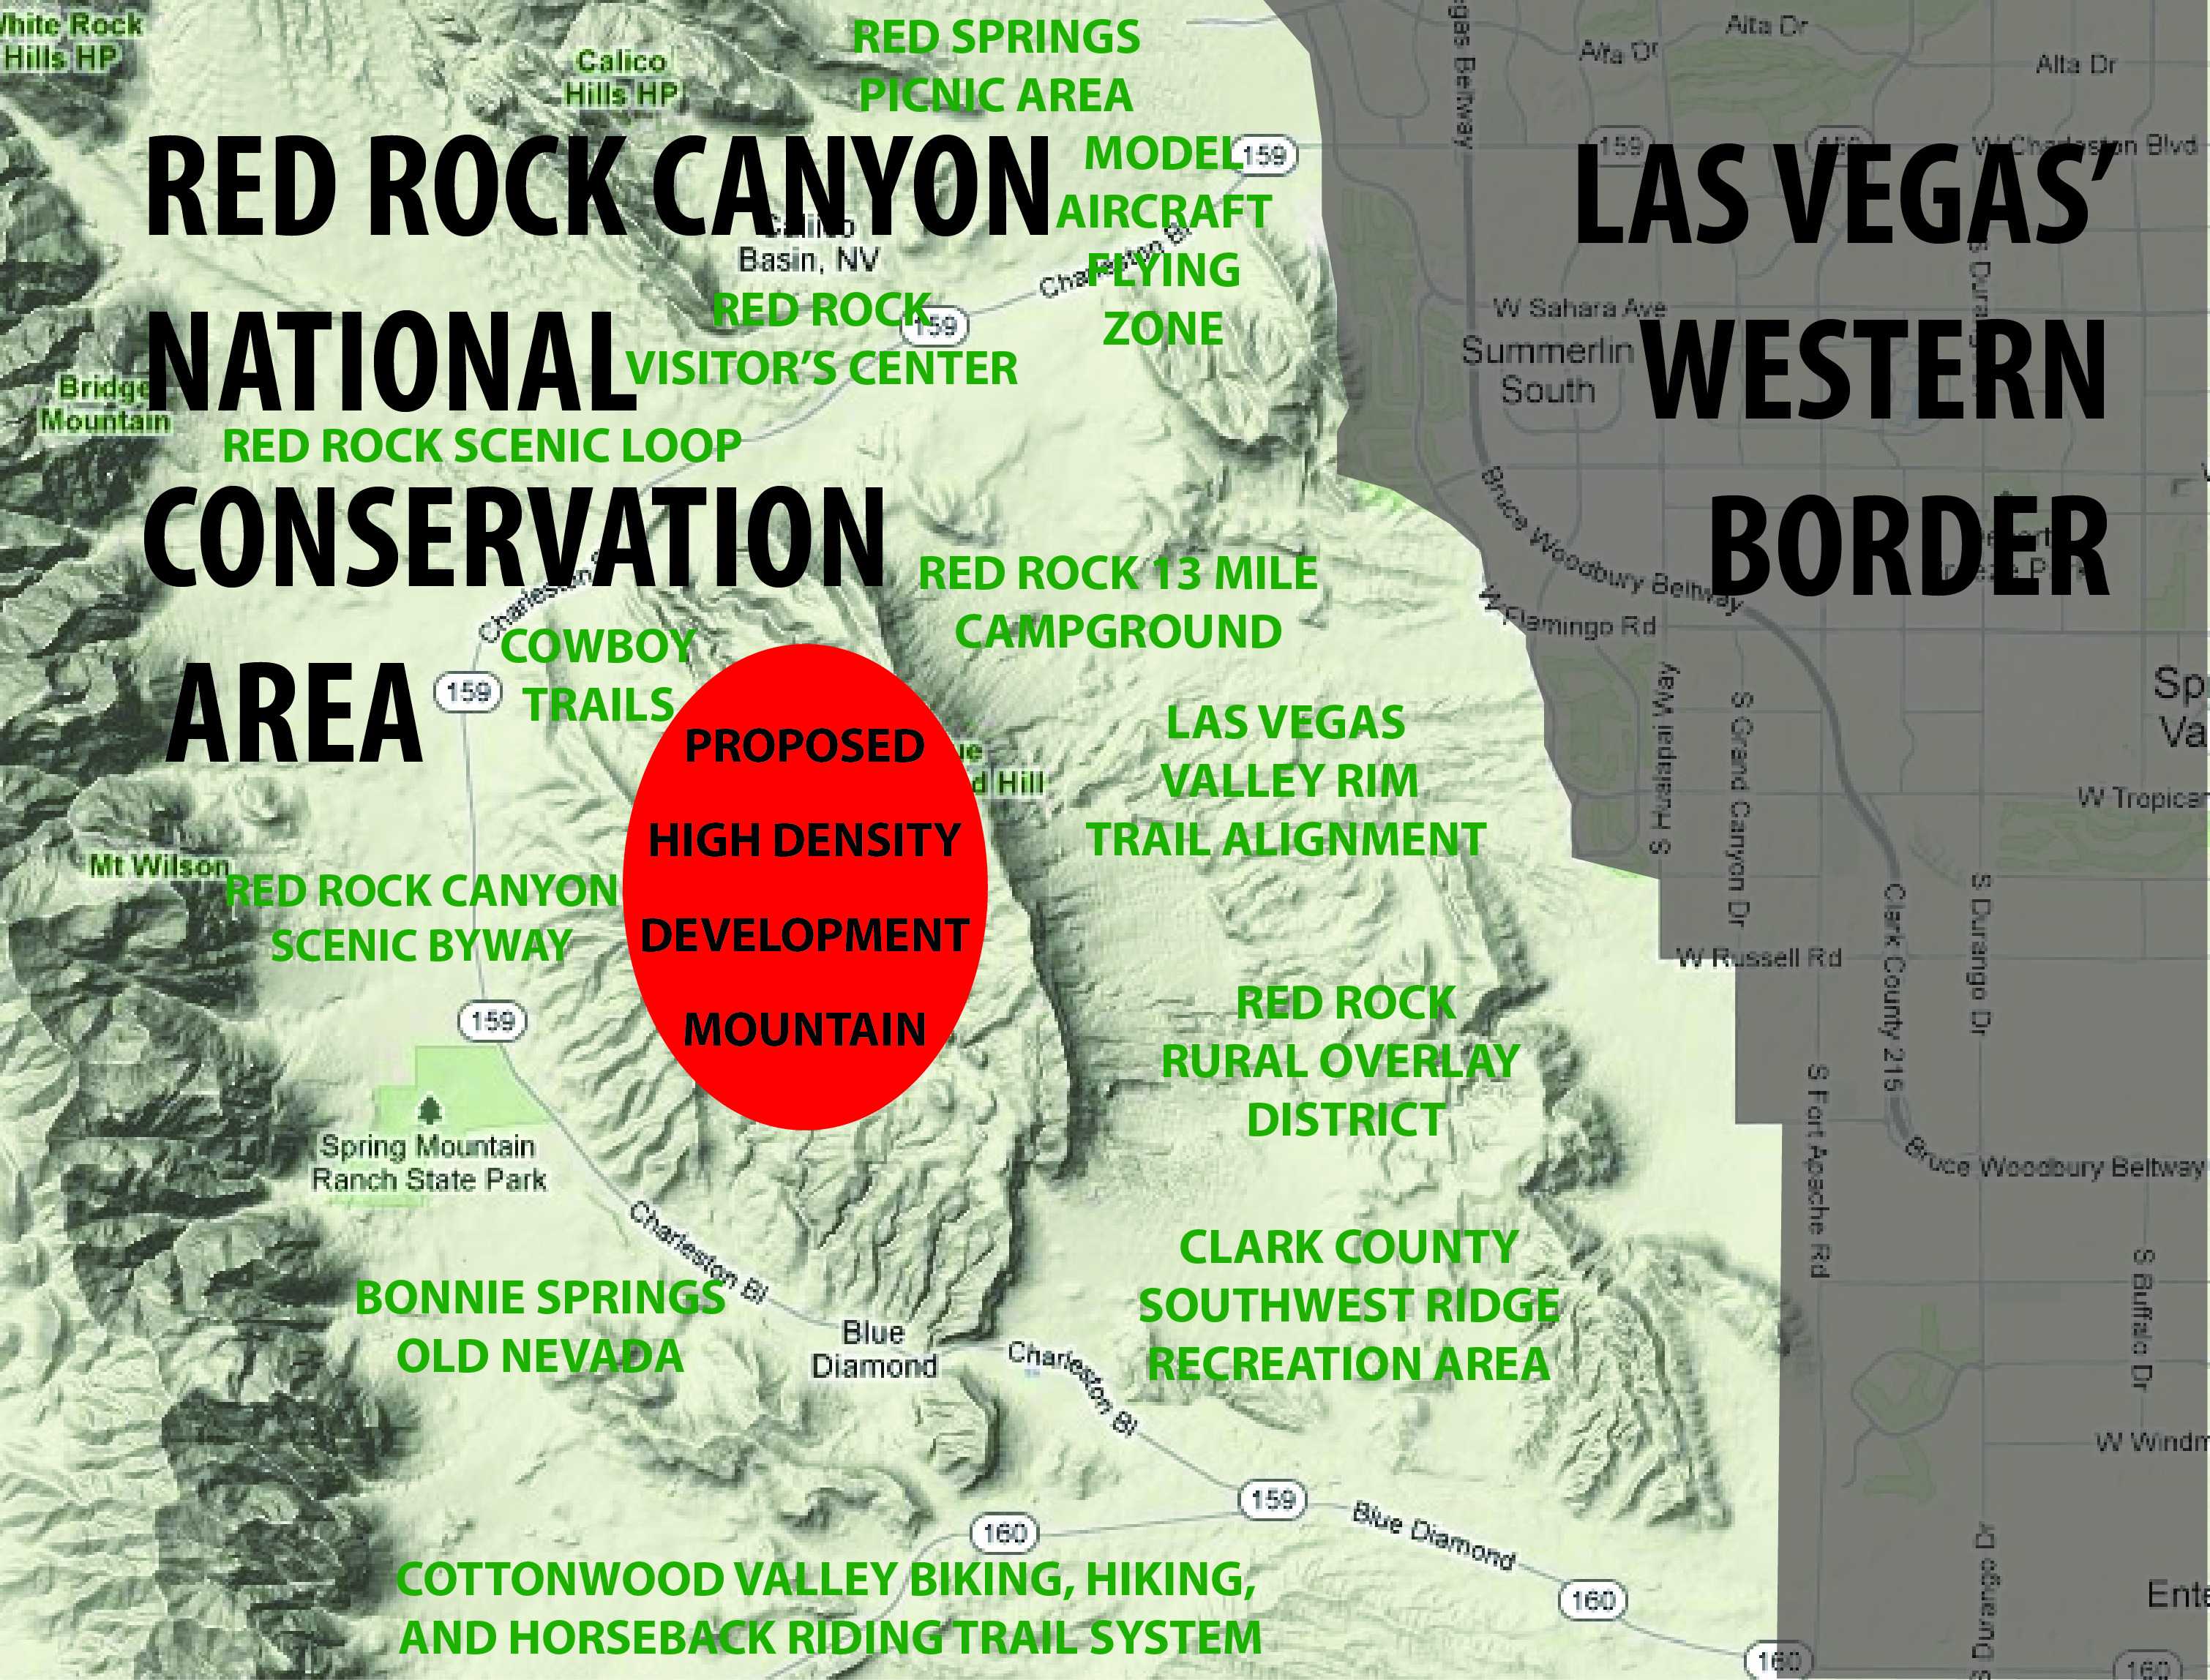 Map of Red Rock Canyon and location of proposed high-density housing development. Photo: Save Red Rock Coalition.